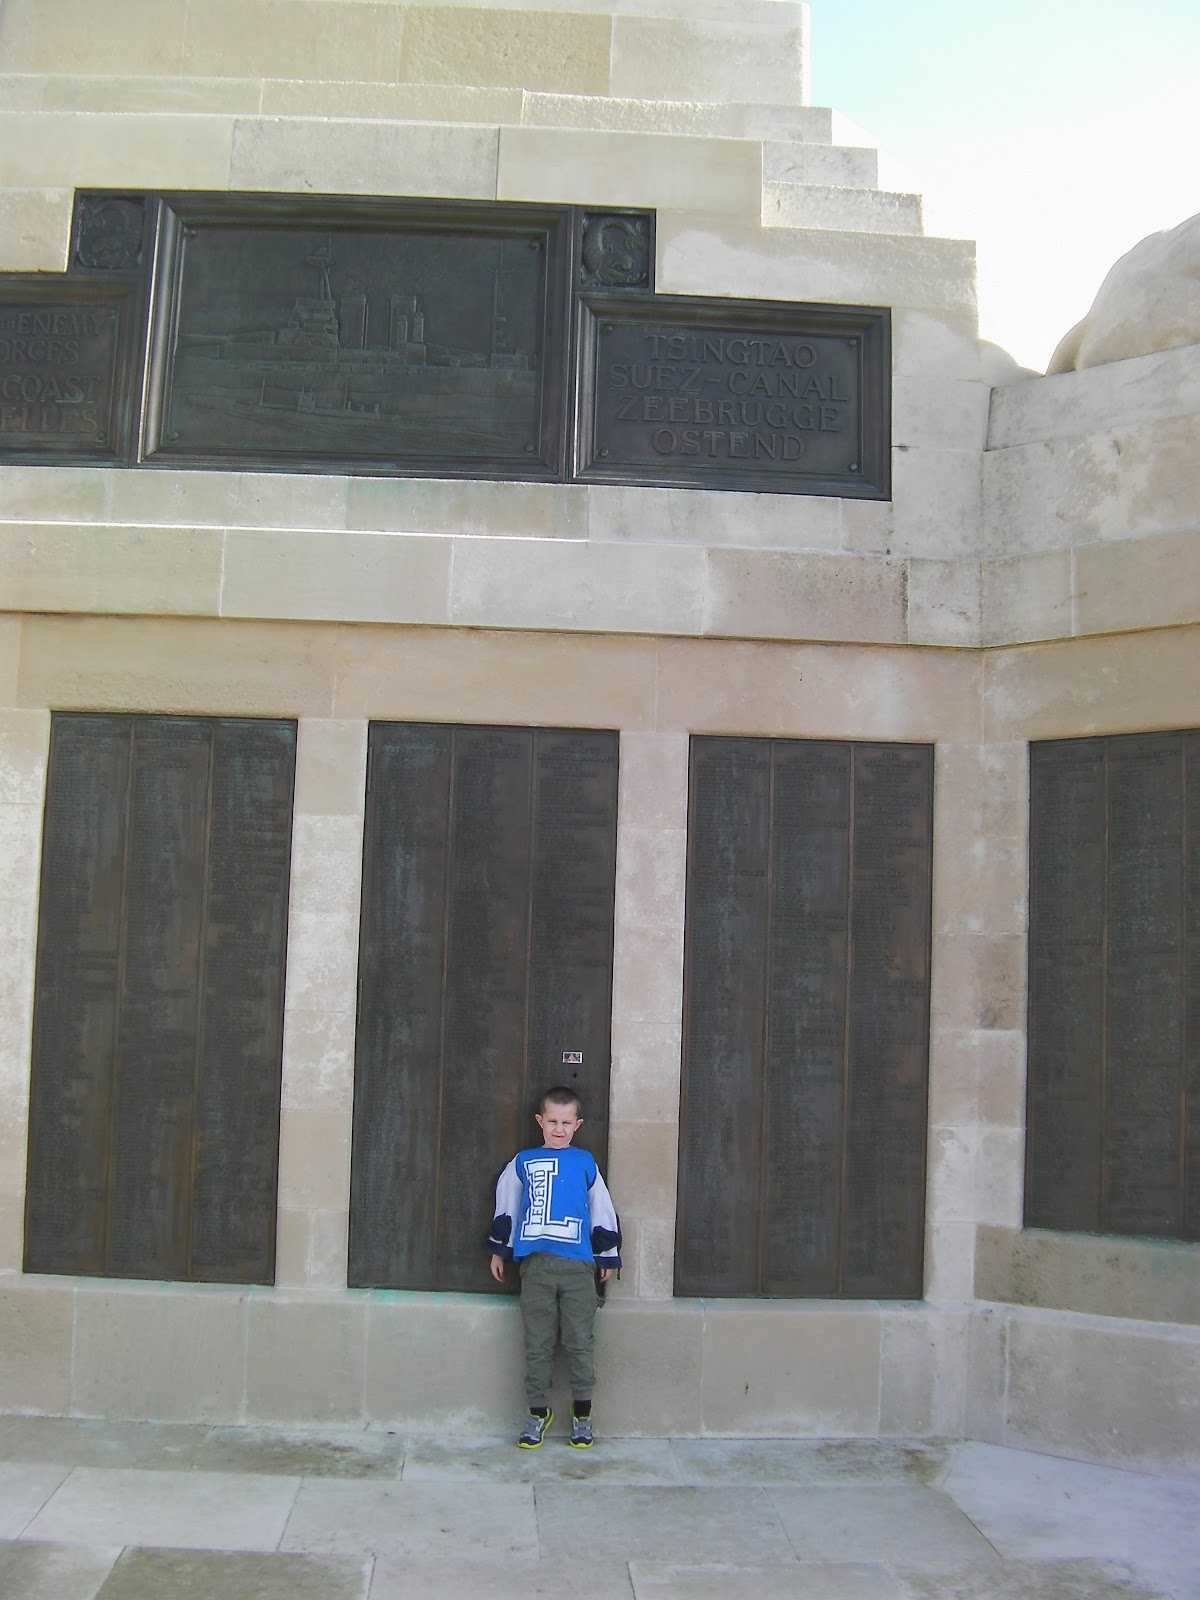 bronze panels lists of names of the fallen of both world wars